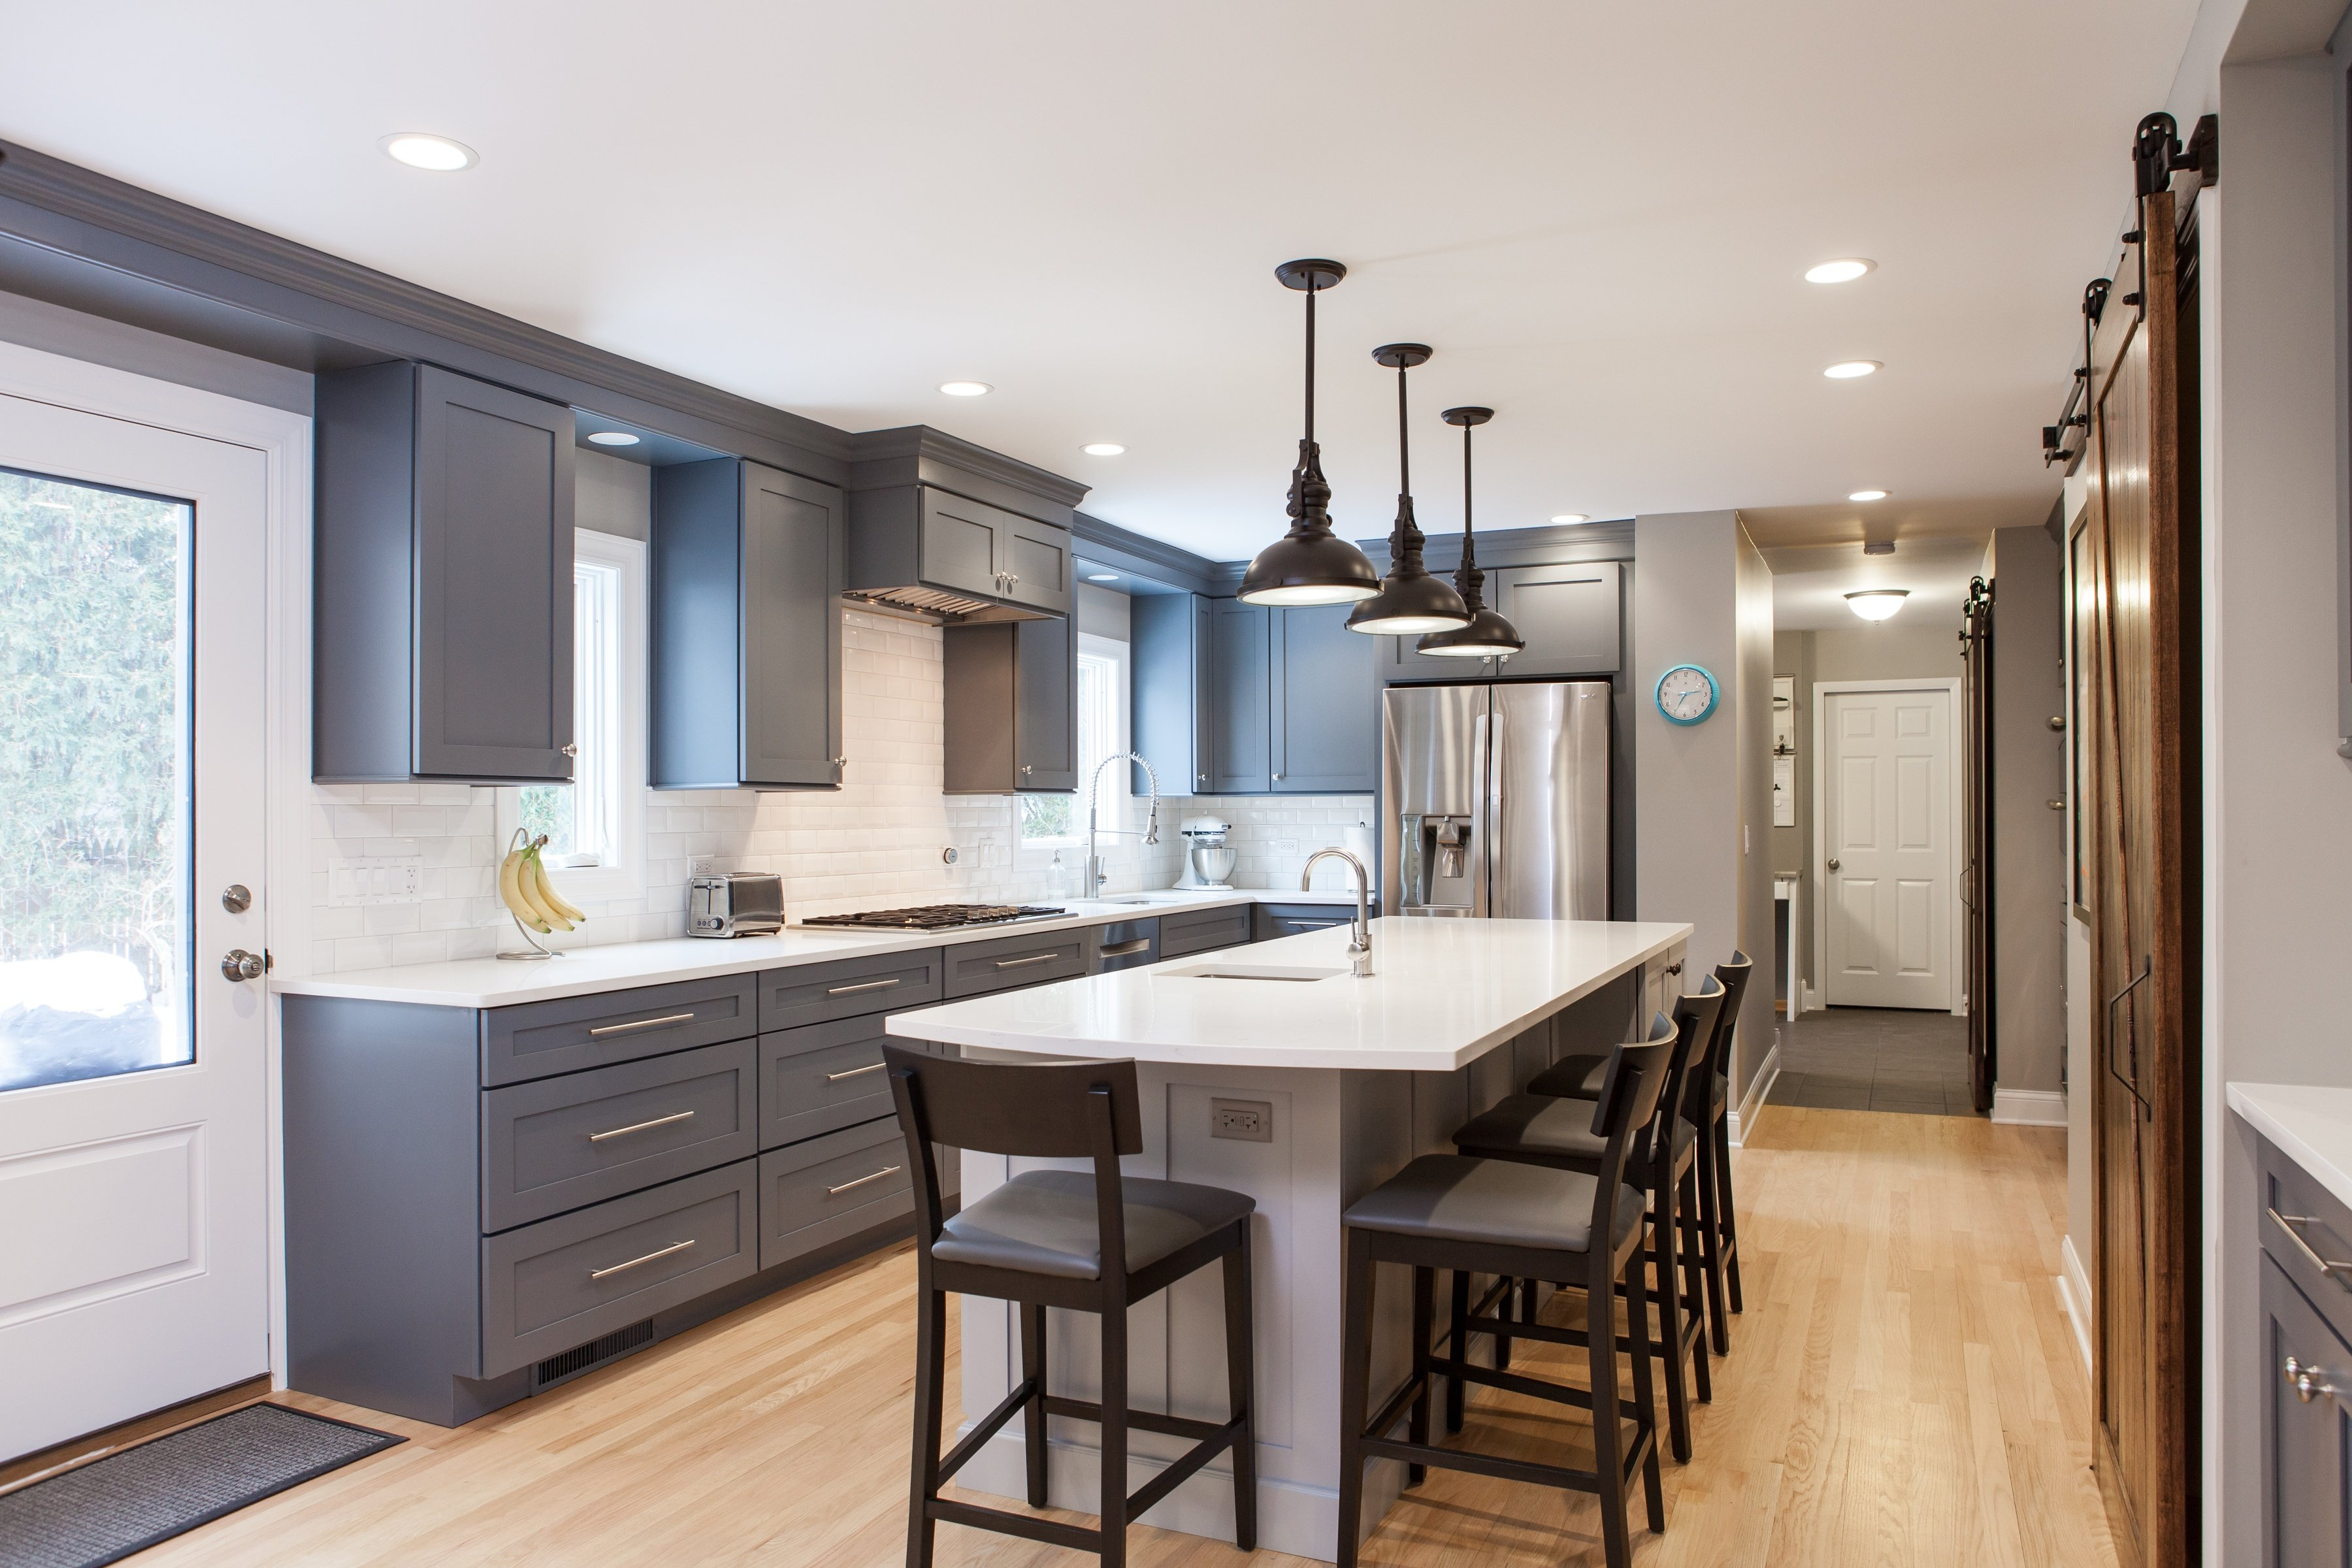 Lets take a look at all basic kitchen floor plans and discuss how you can choose the ideal kitchen layout for your chicago north shore area home